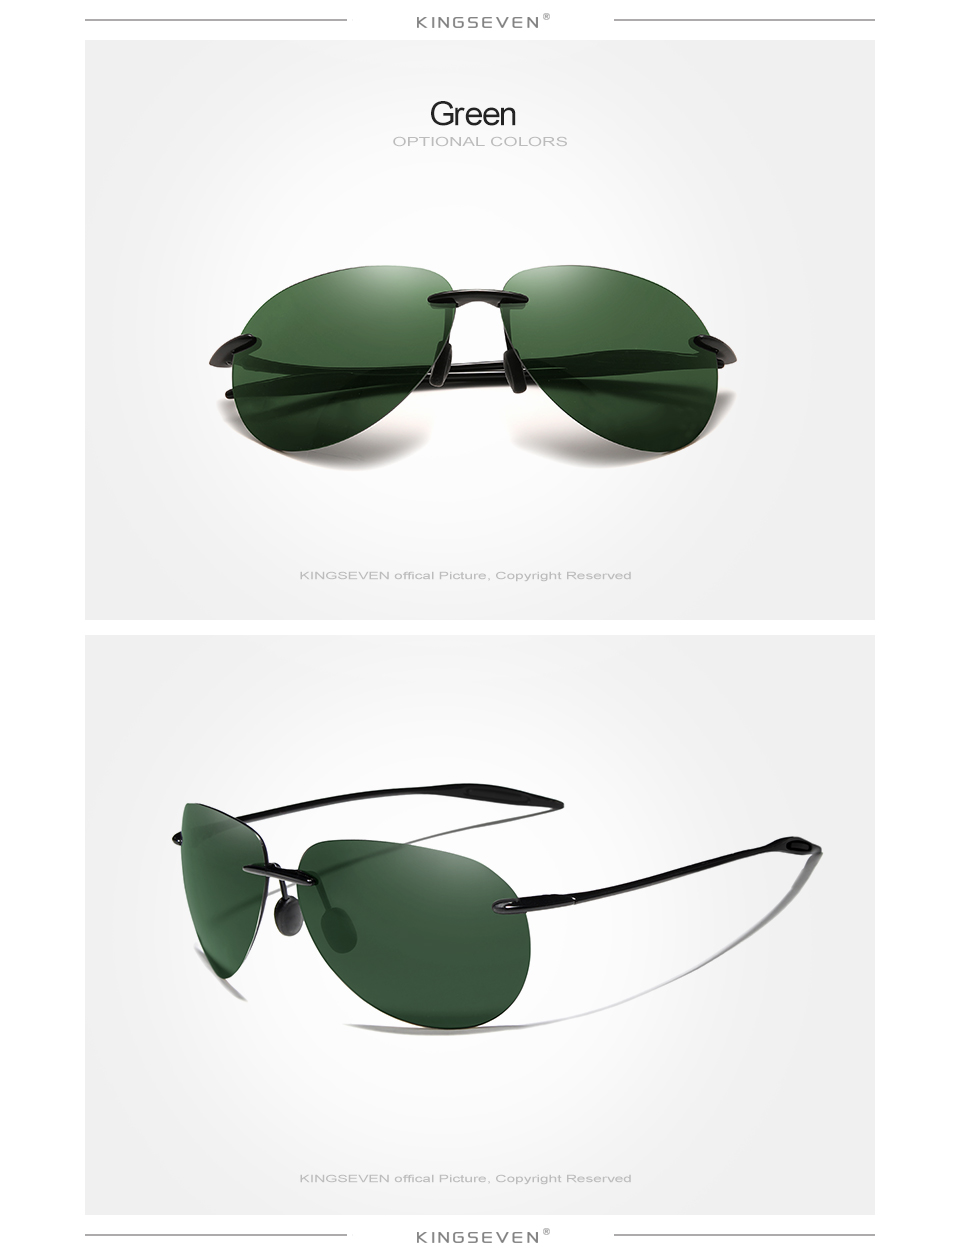 H991f801b744f478ead904ede8c51dd9cJ - KINGSEVEN Ultralight TR90 Rimless Sunglasses Men High Quality Frameless Sun Glasses For Women Oculos Feminino